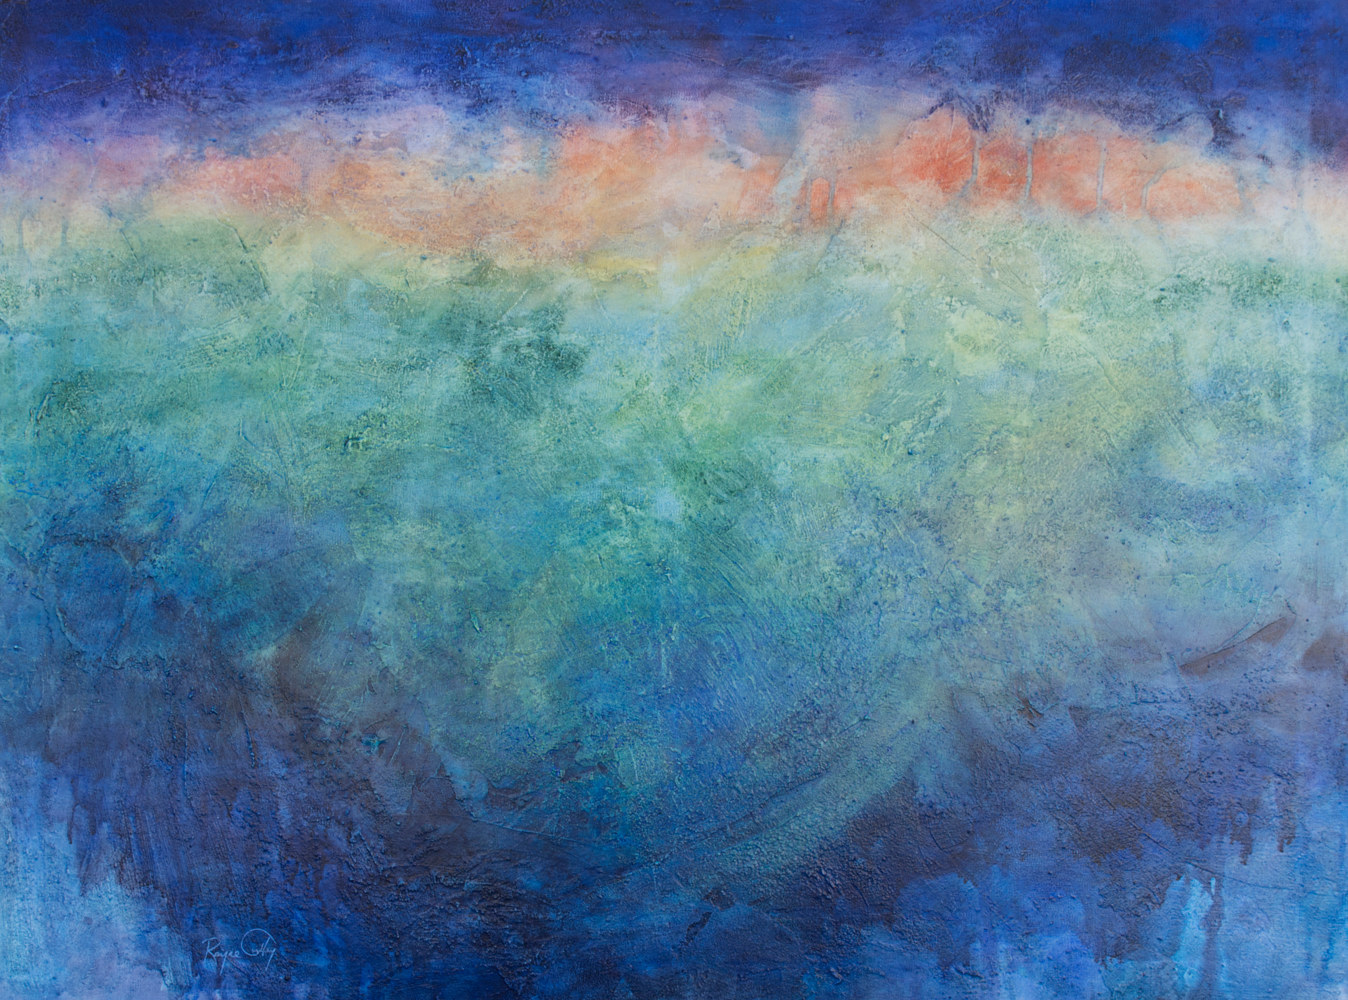 Tunley, Rayne, Nature's Crescendo, 30in x 40in watercolour, varnished by Rayne Tunley